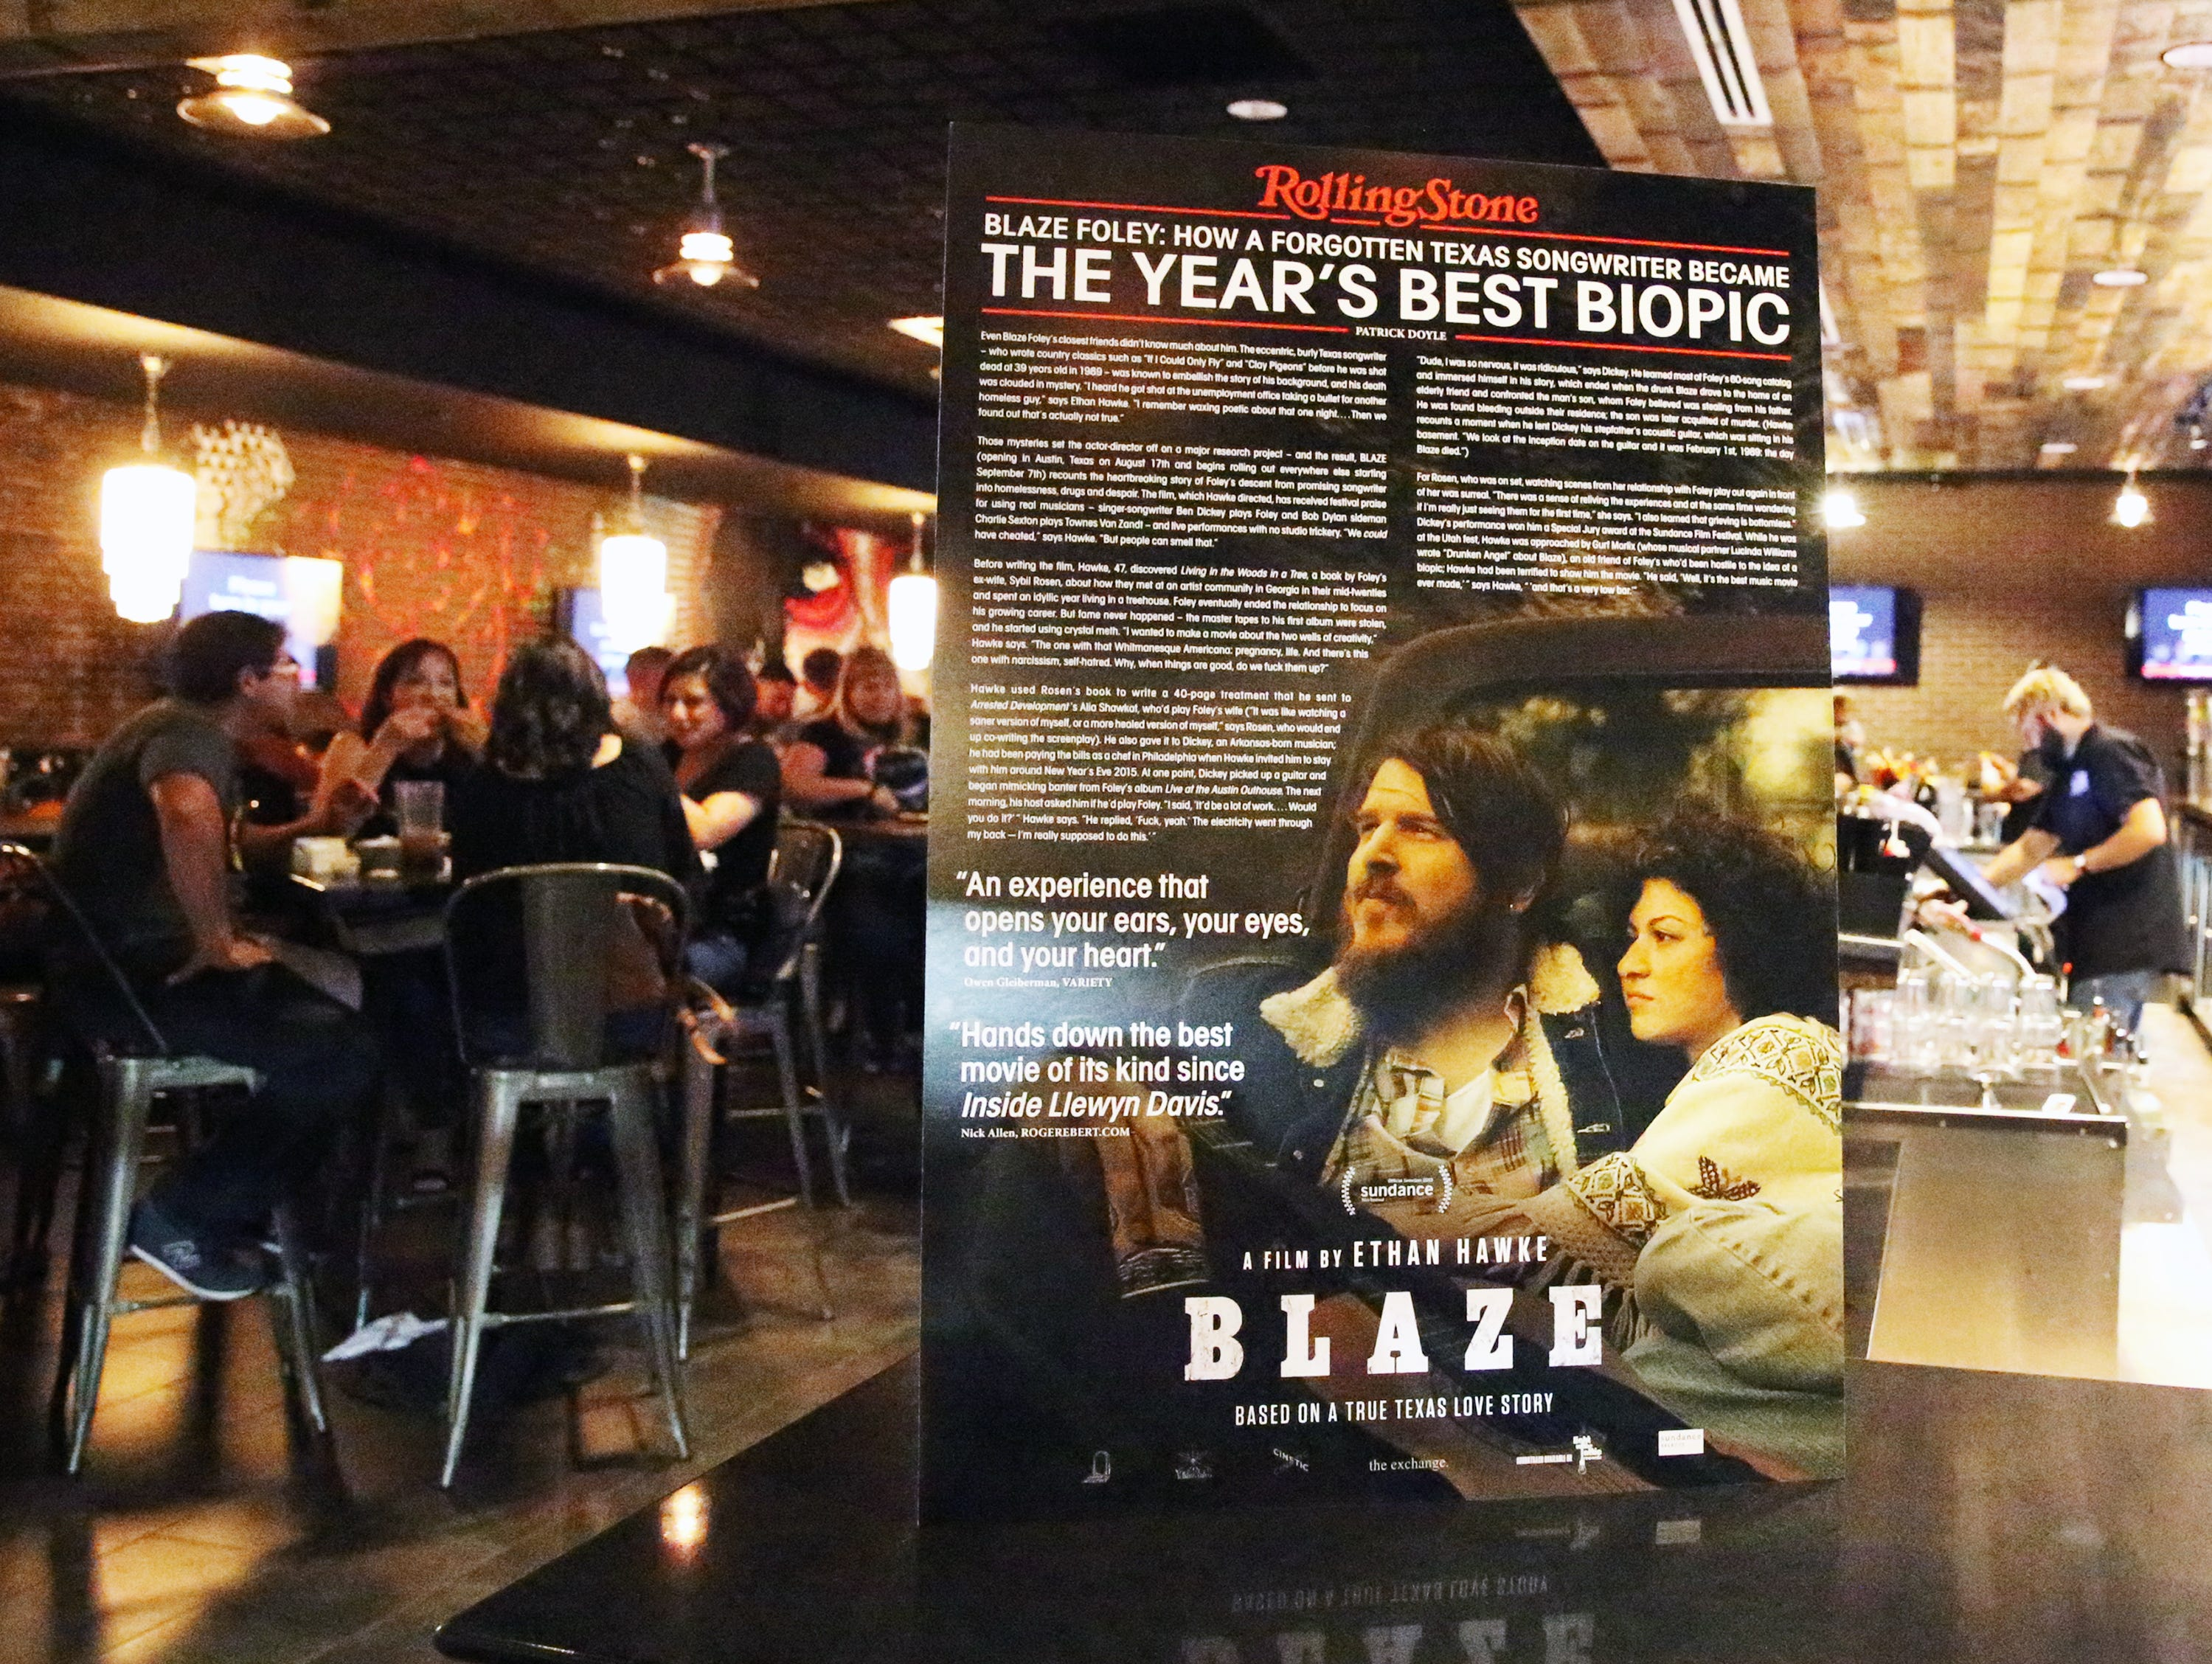 An advertisement for the movie 'Blaze' at Alamo Drafthouse Cinema.